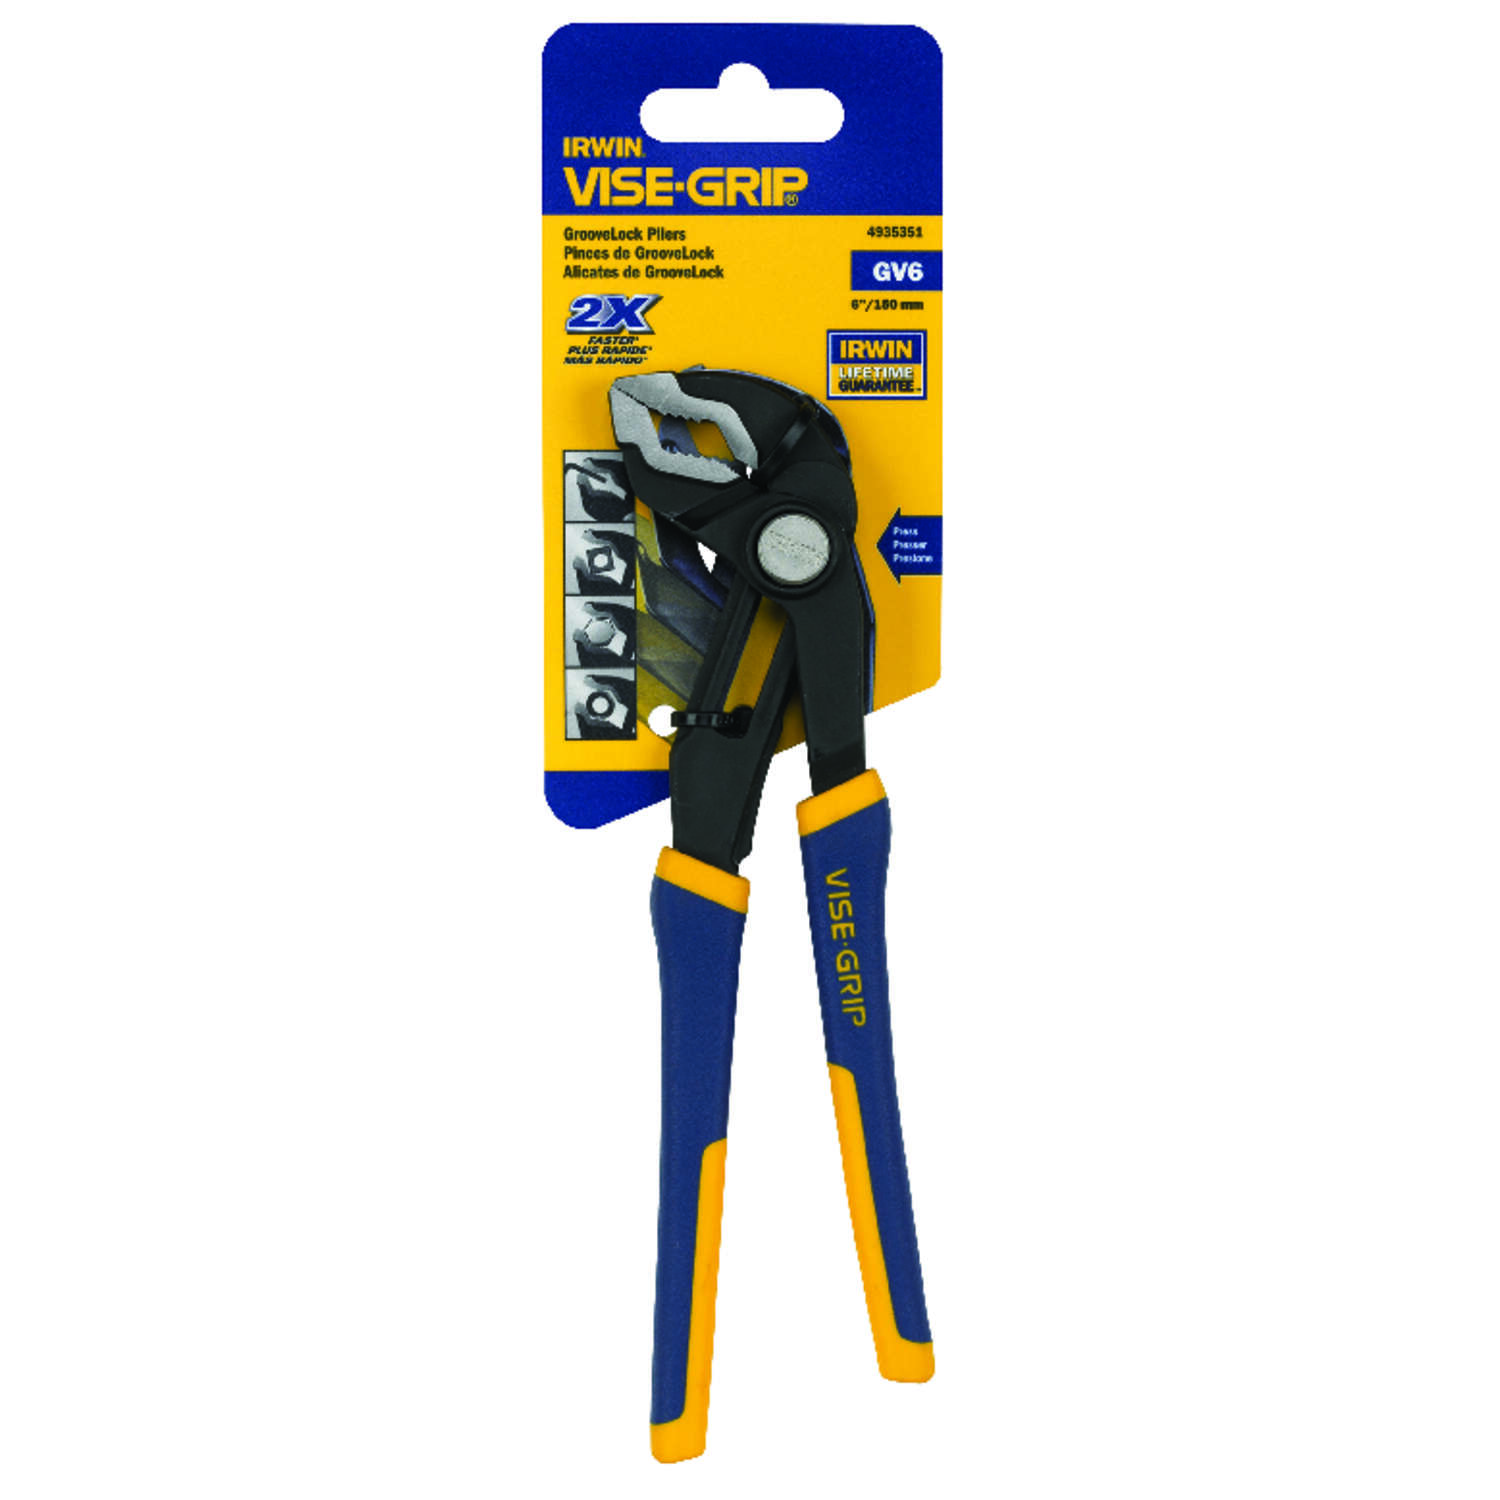 Irwin  Vise-Grip  6 in. Nickel Chrome Steel  Tongue and Groove Pliers